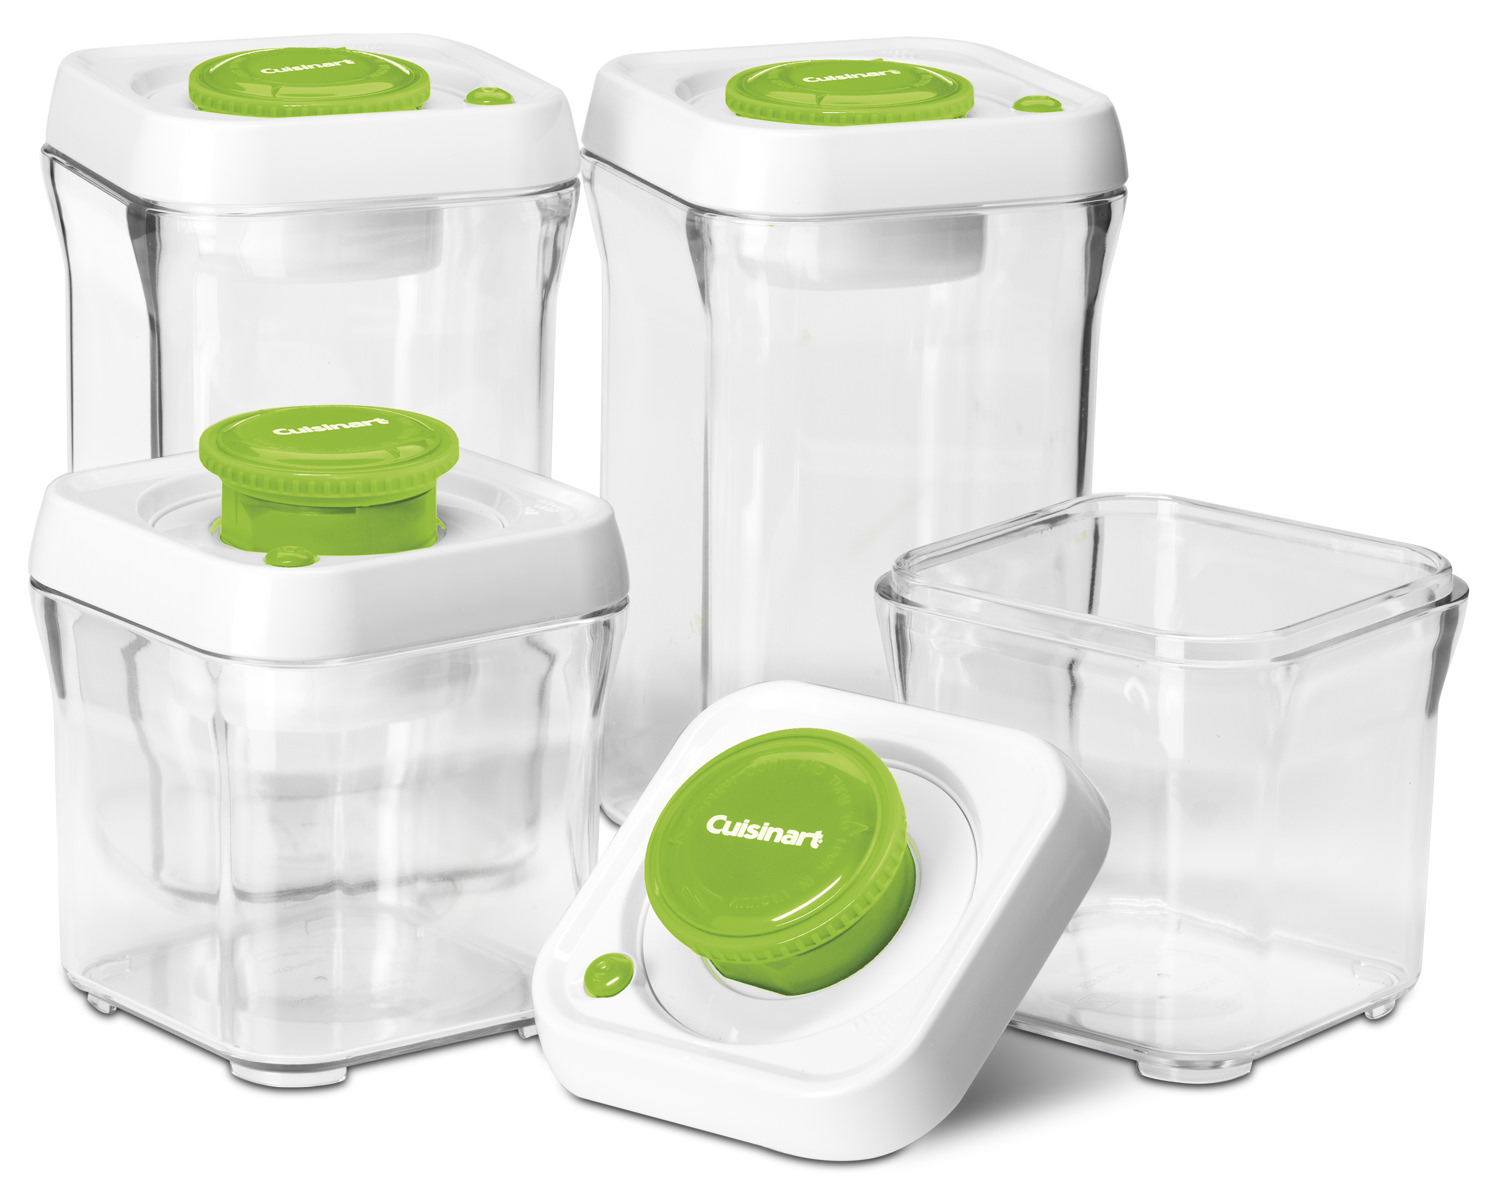 Fresh Edge 8-Piece Vacuum Sealed Food Storage Containers  sc 1 st  Walmart & Fresh Edge 8-Piece Vacuum Sealed Food Storage Containers - Walmart.com